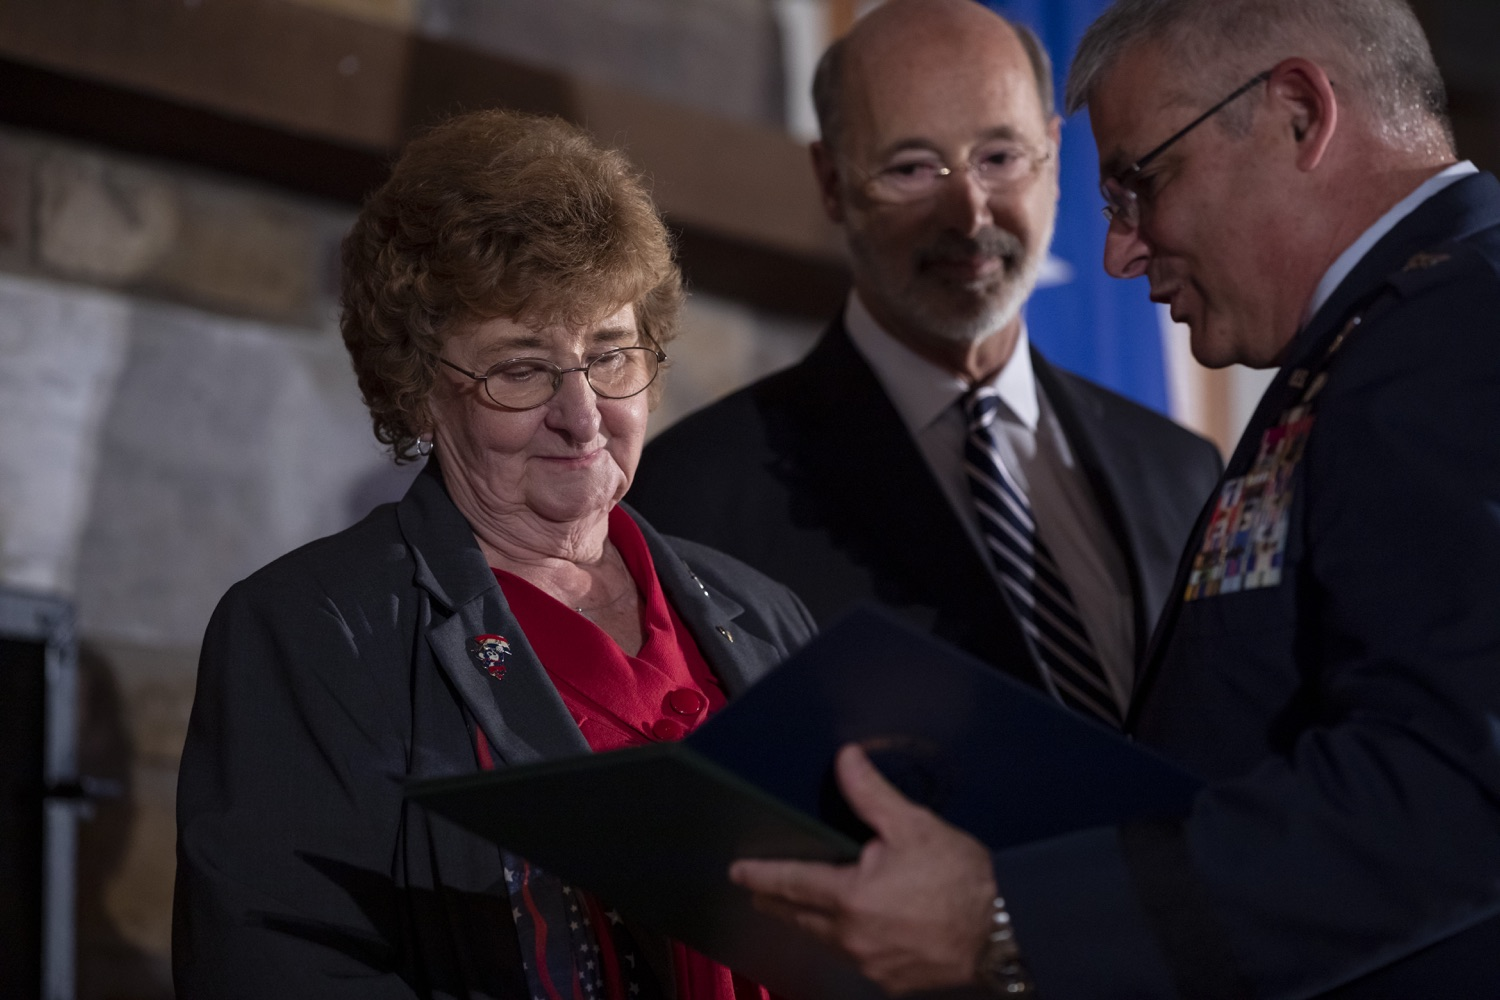 """<a href=""""https://filesource.wostreaming.net/commonwealthofpa/photo/17557_gov_dmva_rjw_010.jpg"""" target=""""_blank"""">⇣Download Photo<br></a>Governor Tom Wolf helped to honor two members inducted today into the Pennsylvania Department of Military and Veterans Affairs prestigious Hall of Fame, recognizing their exceptional service to the department that supports Pennsylvanias nearly 800,000 veterans and 18,000 members of the National Guard.  Chief Warrant Officer 5 (ret.) John K. Schreier of Selinsgrove, Snyder County; and John A. Brenner (posthumously) of Mt. Wolf, York County, are the 2019 inductees."""